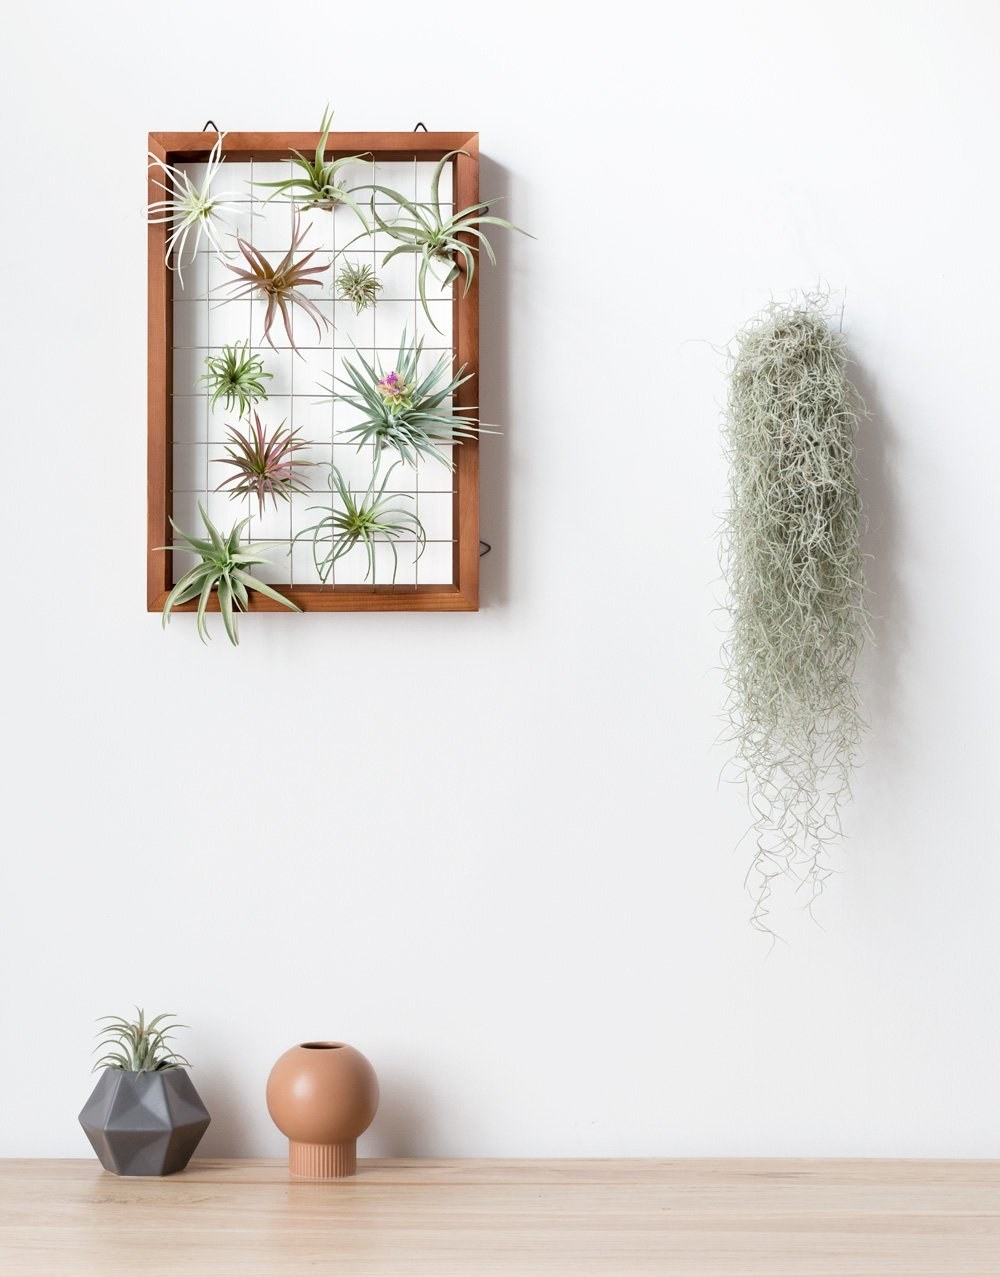 Wood frame with wire grid holding different air plants